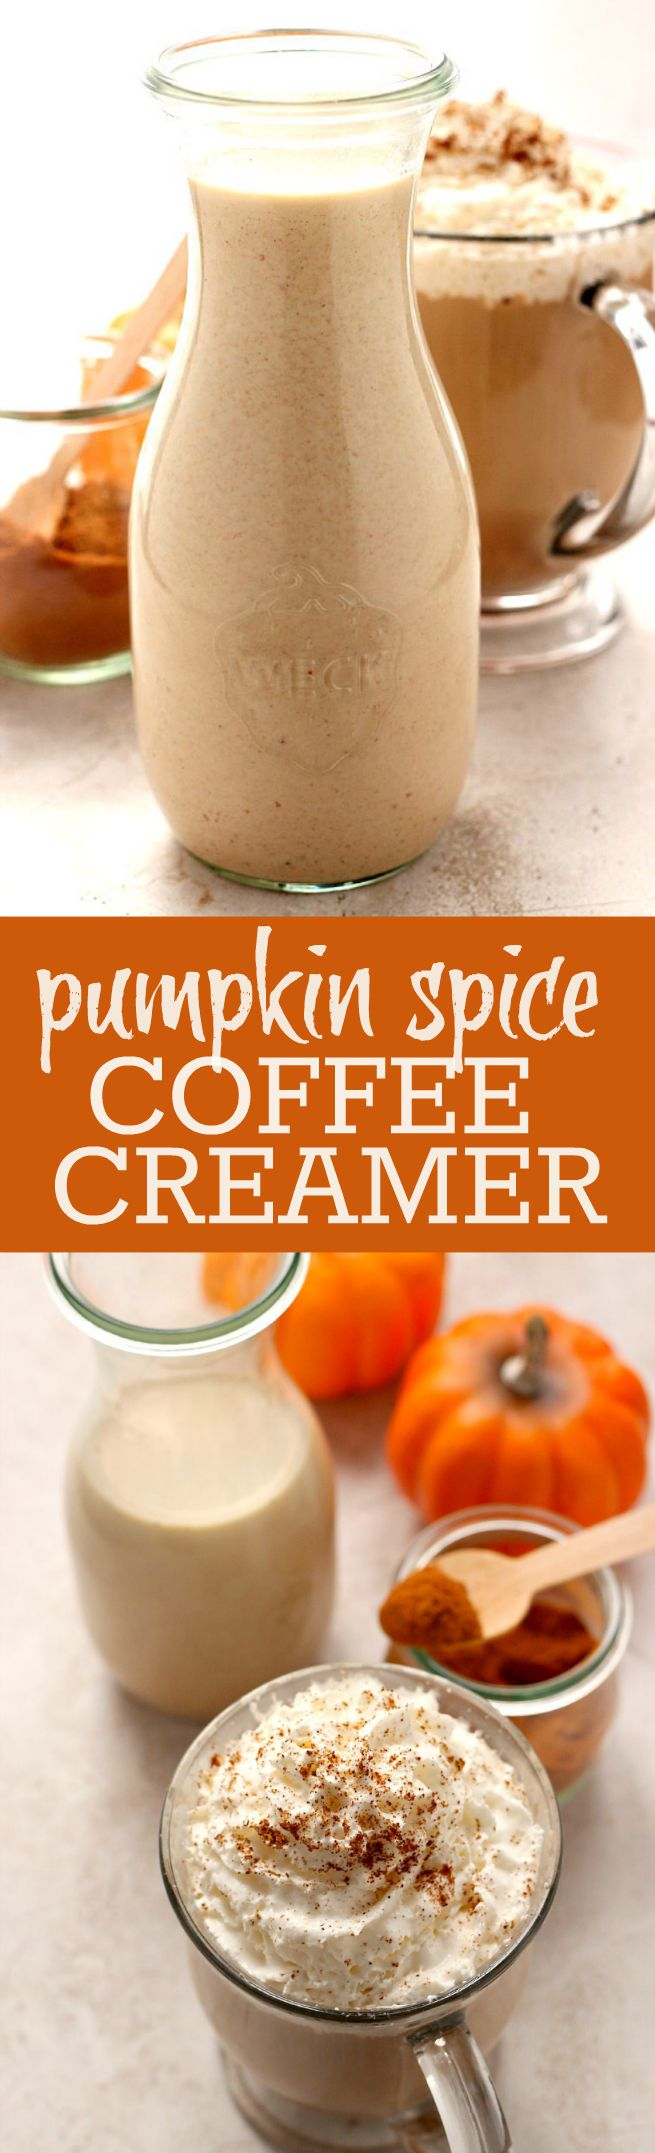 Do you love to buy those pumpkin spice lattes but don't love the price? What about those delicious flavored coffees that you can only find in the fall?